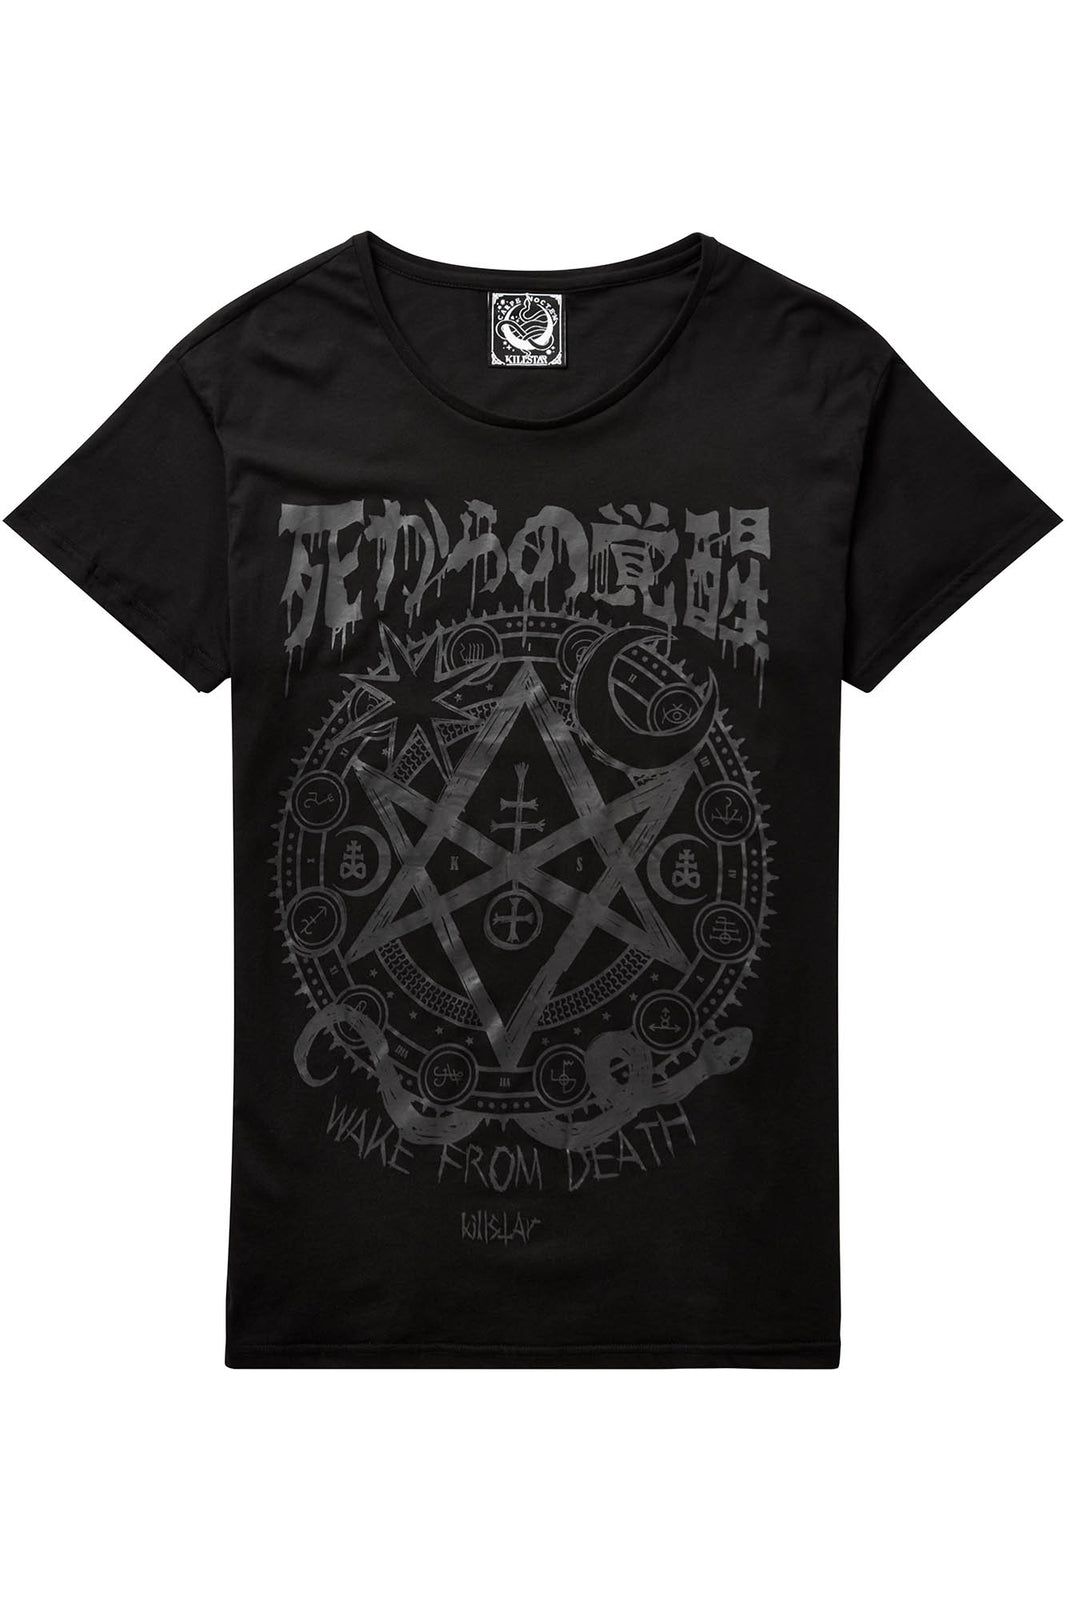 Wake From Death T-Shirt